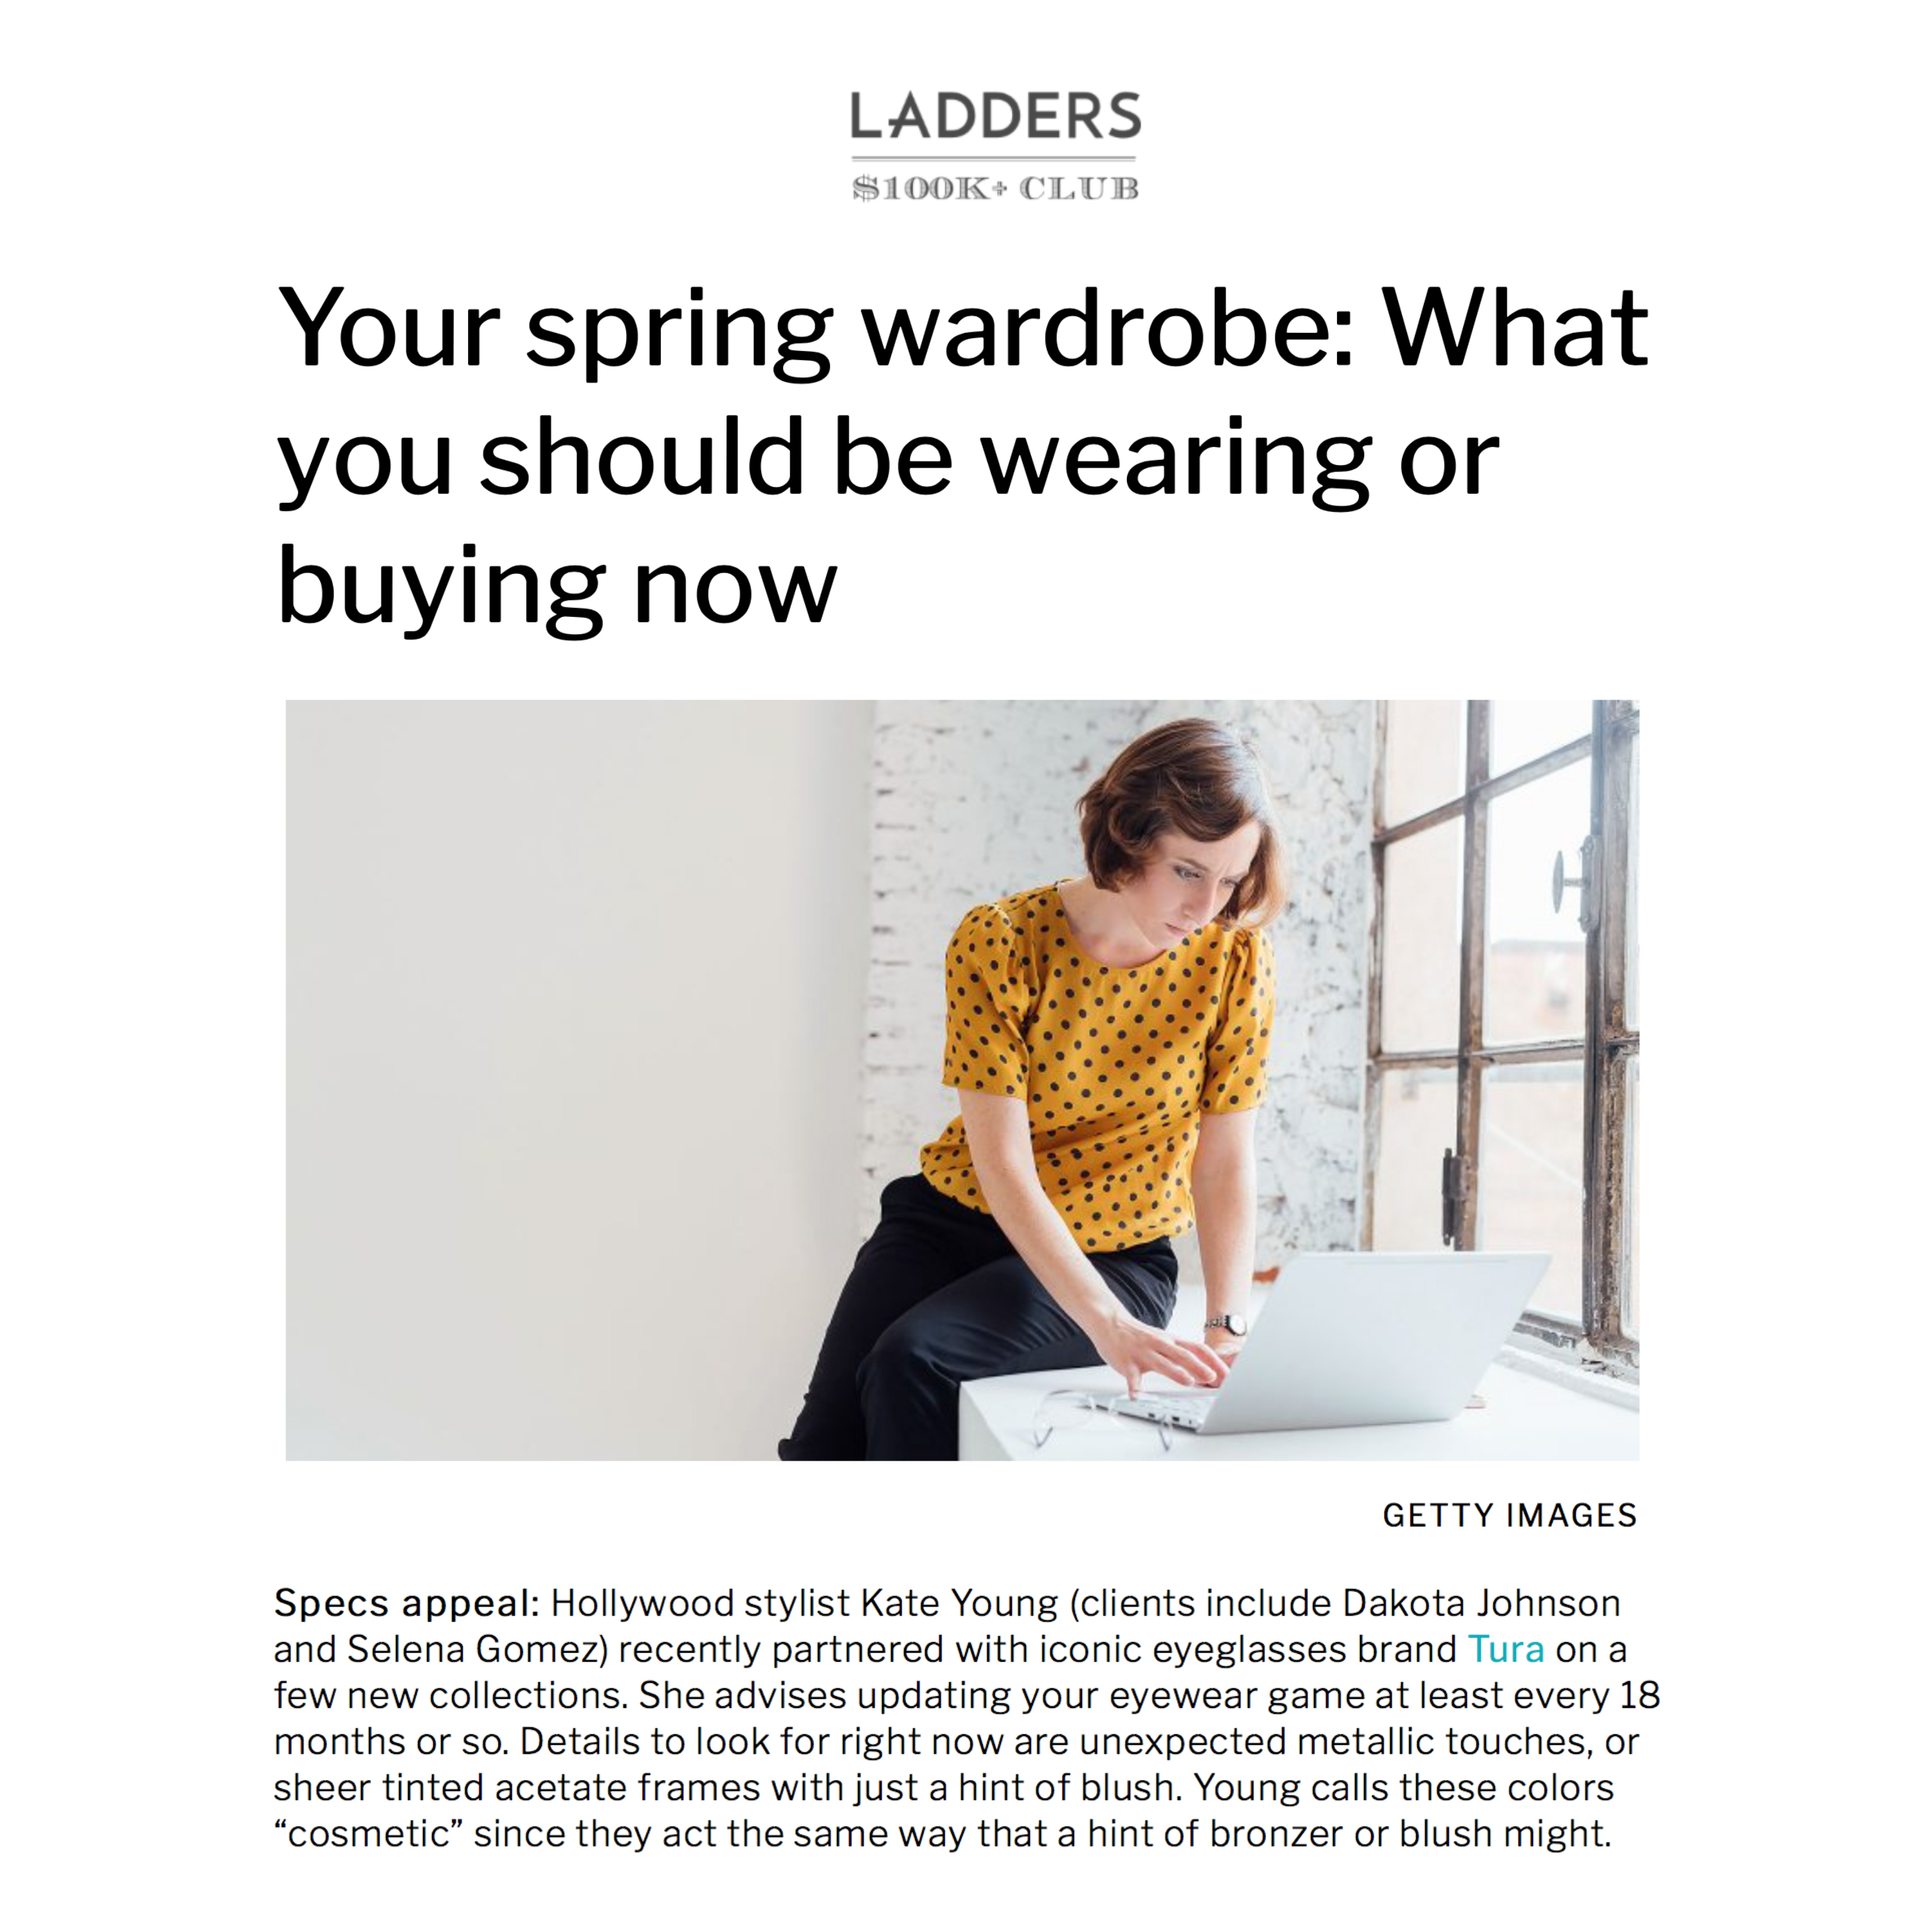 KATE YOUNG AND KATE YOUNG FOR TURA FEATURED IN LADDERS WITH TIPS FOR SPRING WARDROBE PLANNING